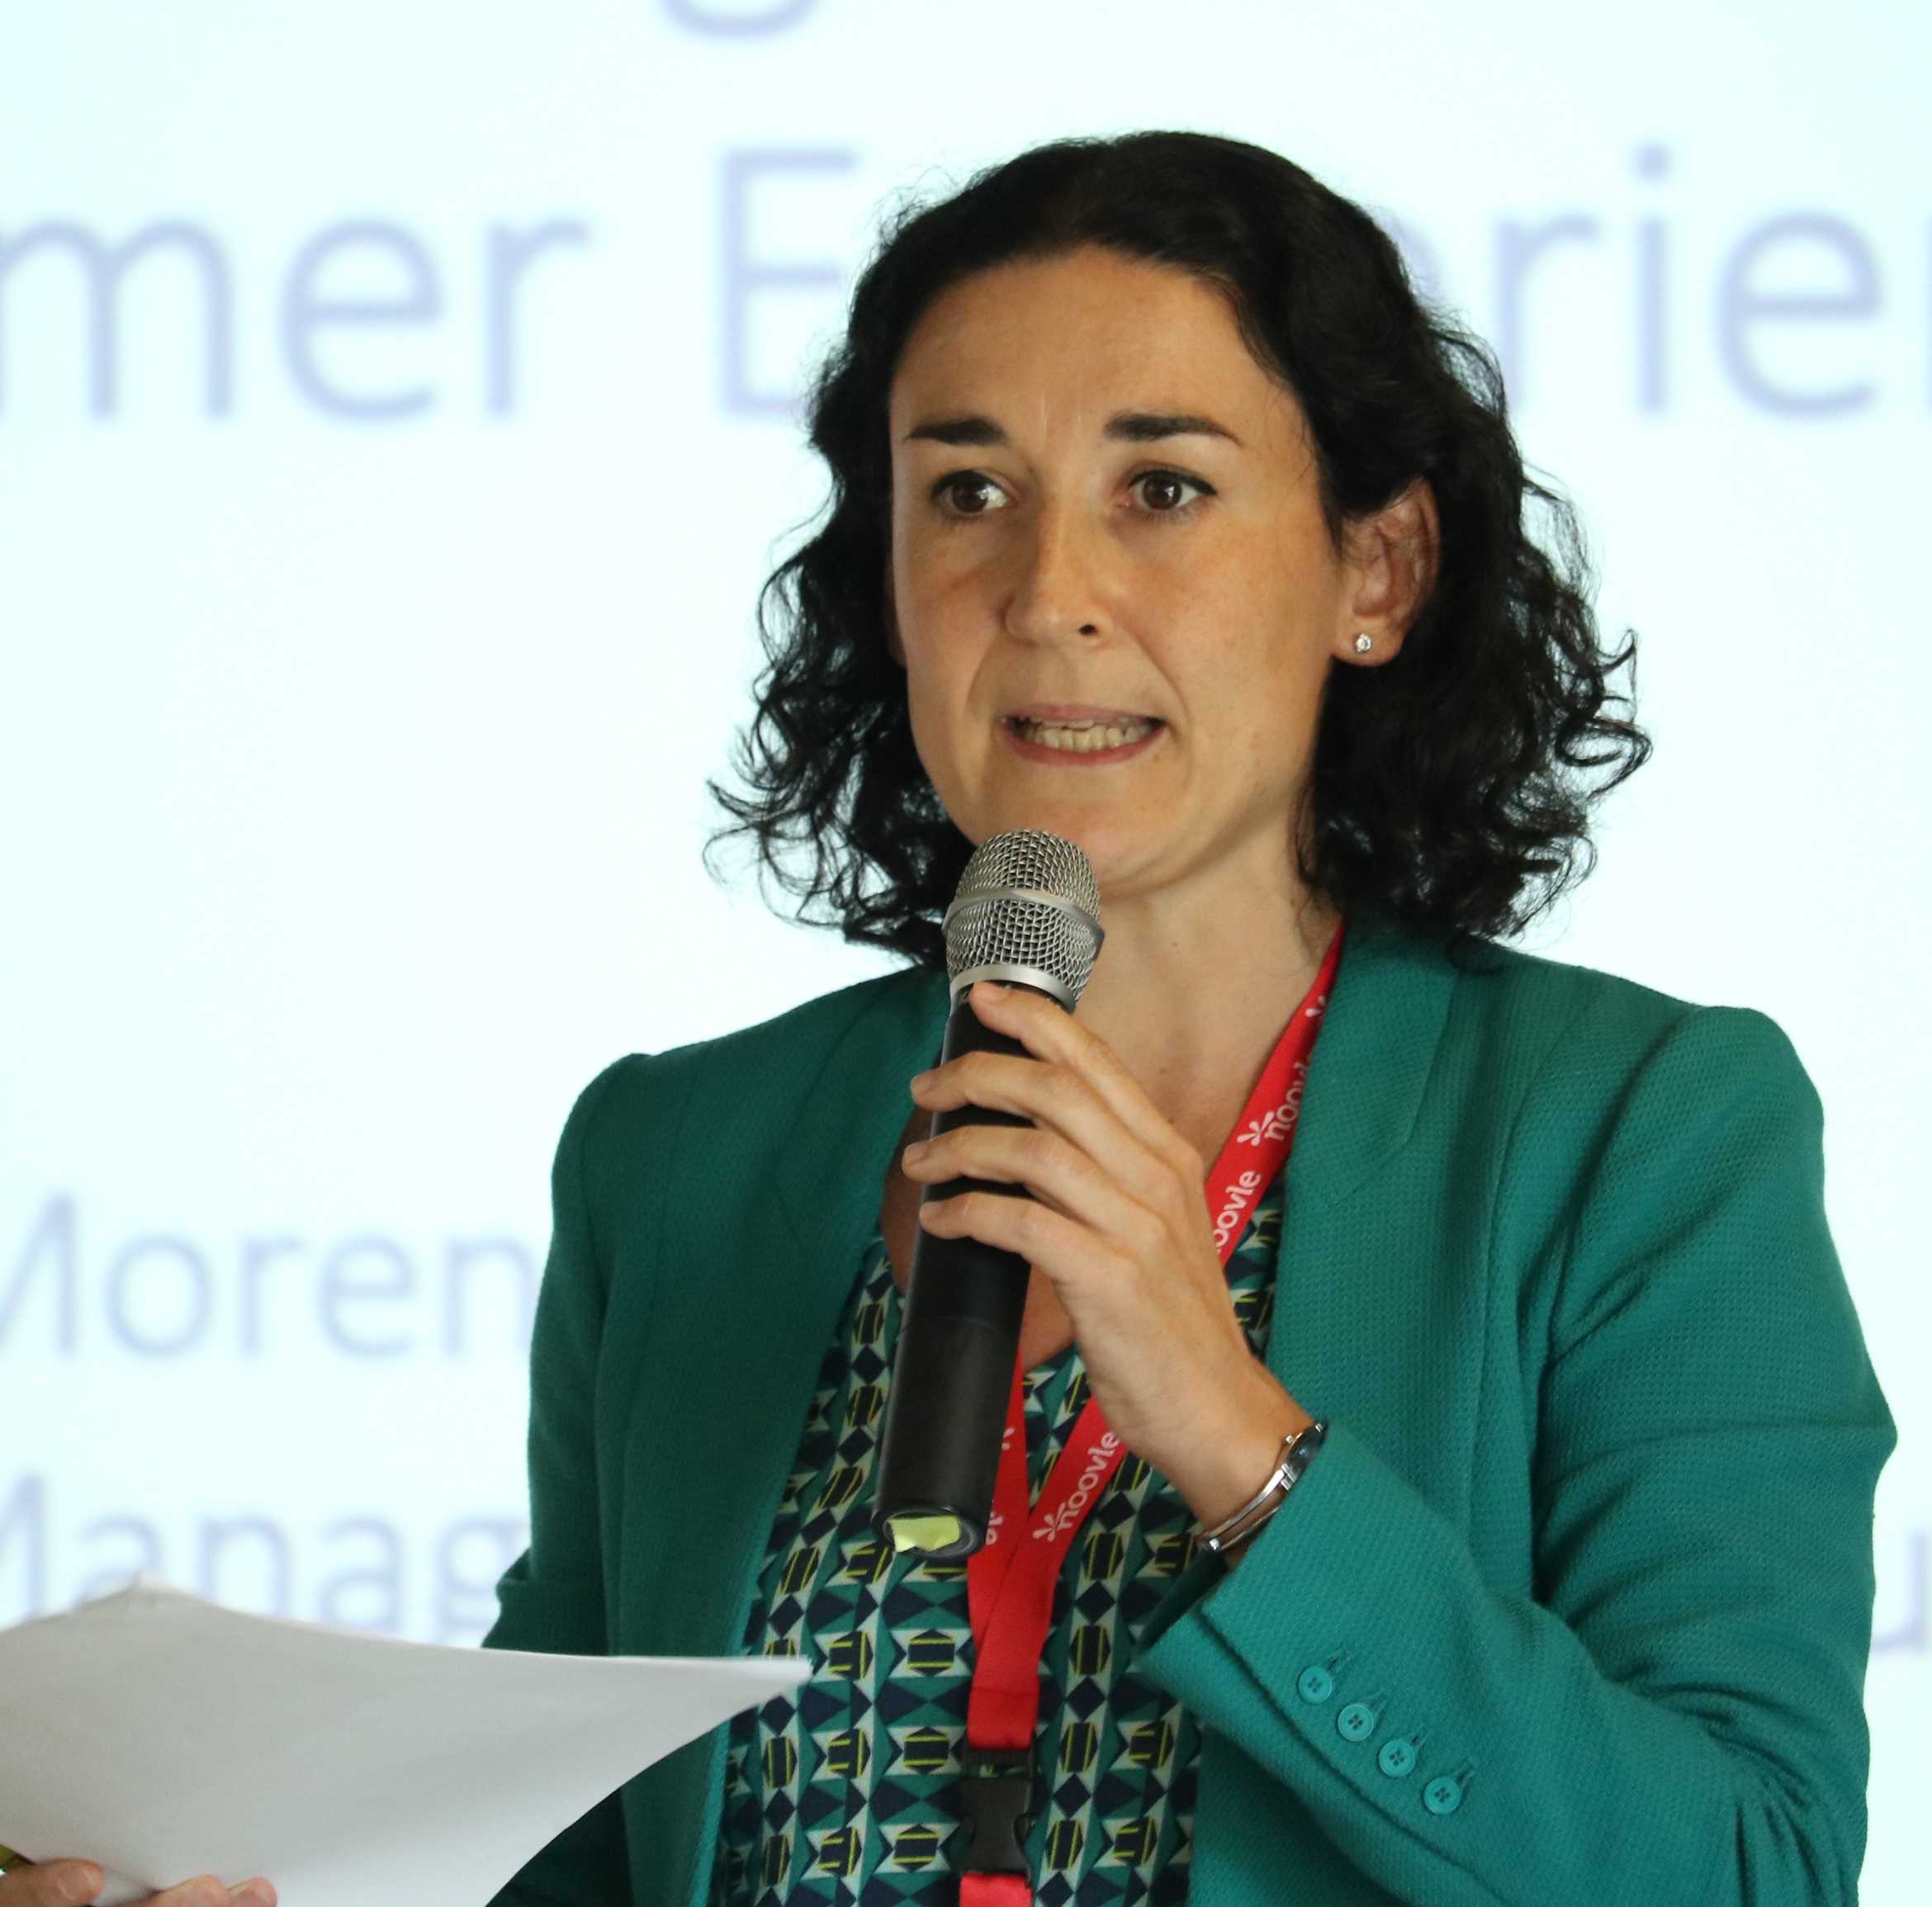 Carolina Moreno, General Manager South Europe di Liferay